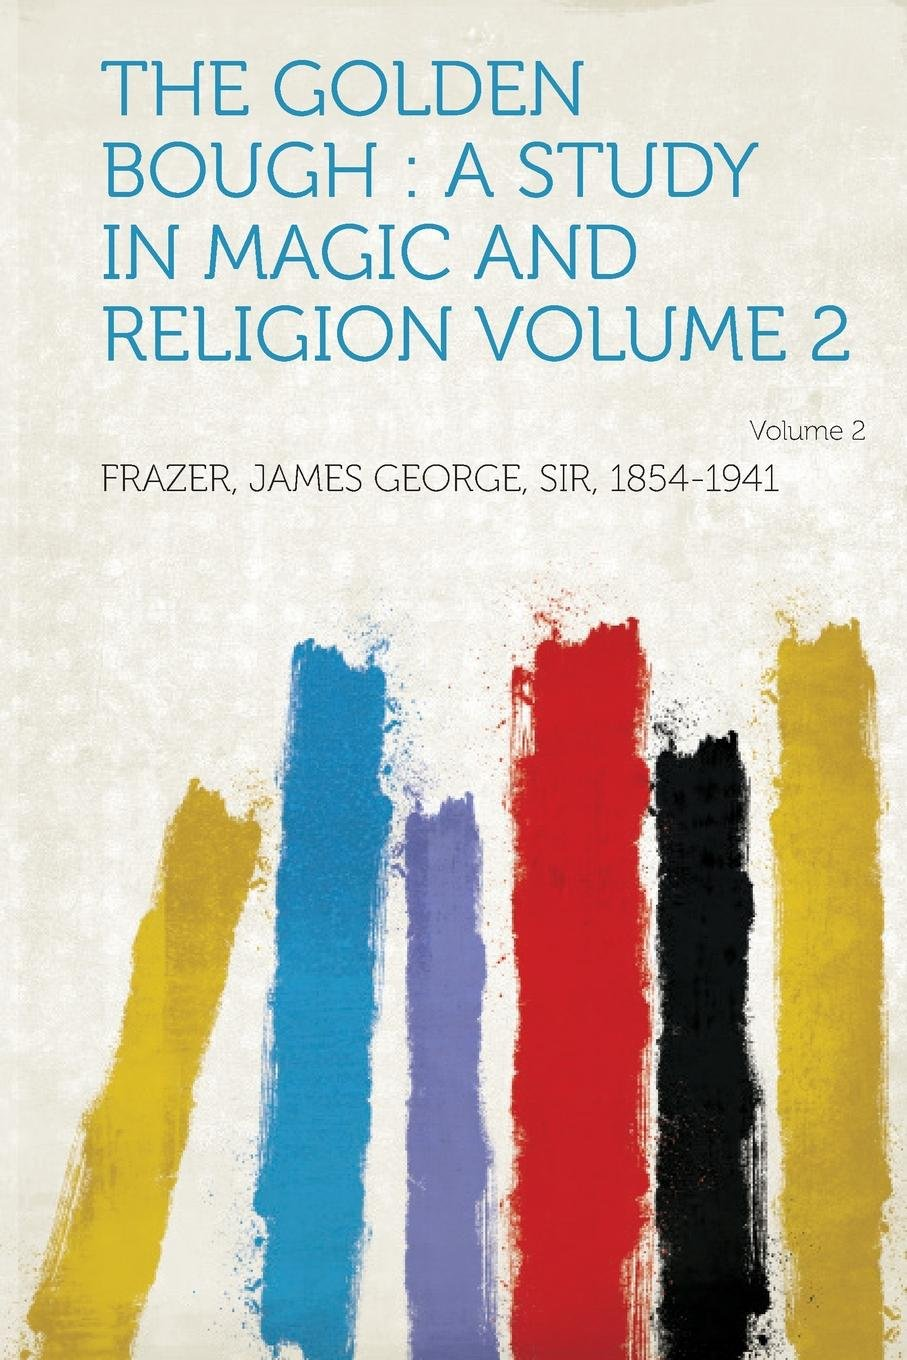 The Golden Bough: A Study in Magic and Religion Volume 2 ebook